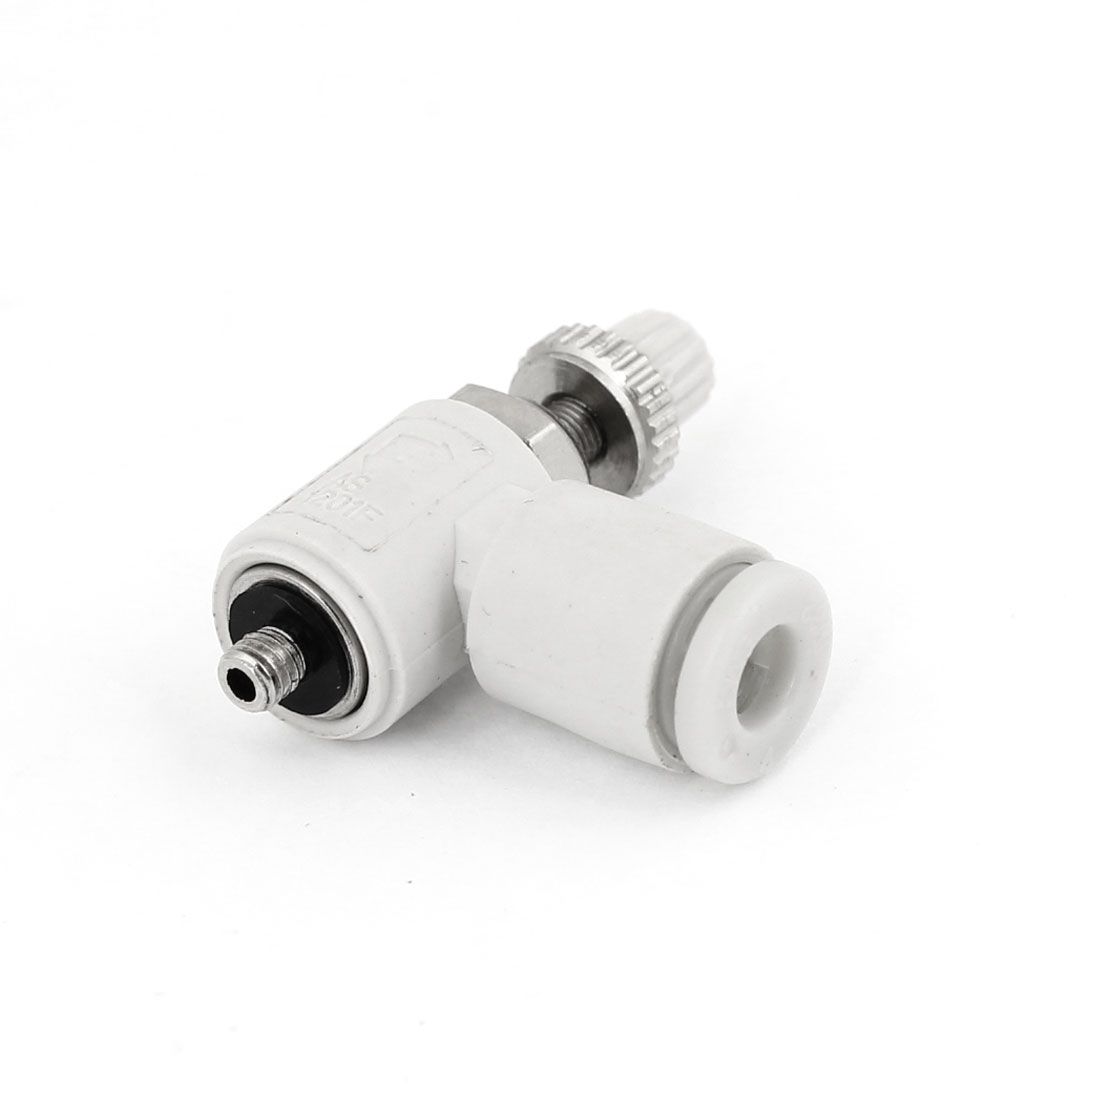 4mm Dia Tube 3mm Male Threaded Pneumatic Speed Controller Quick Connector